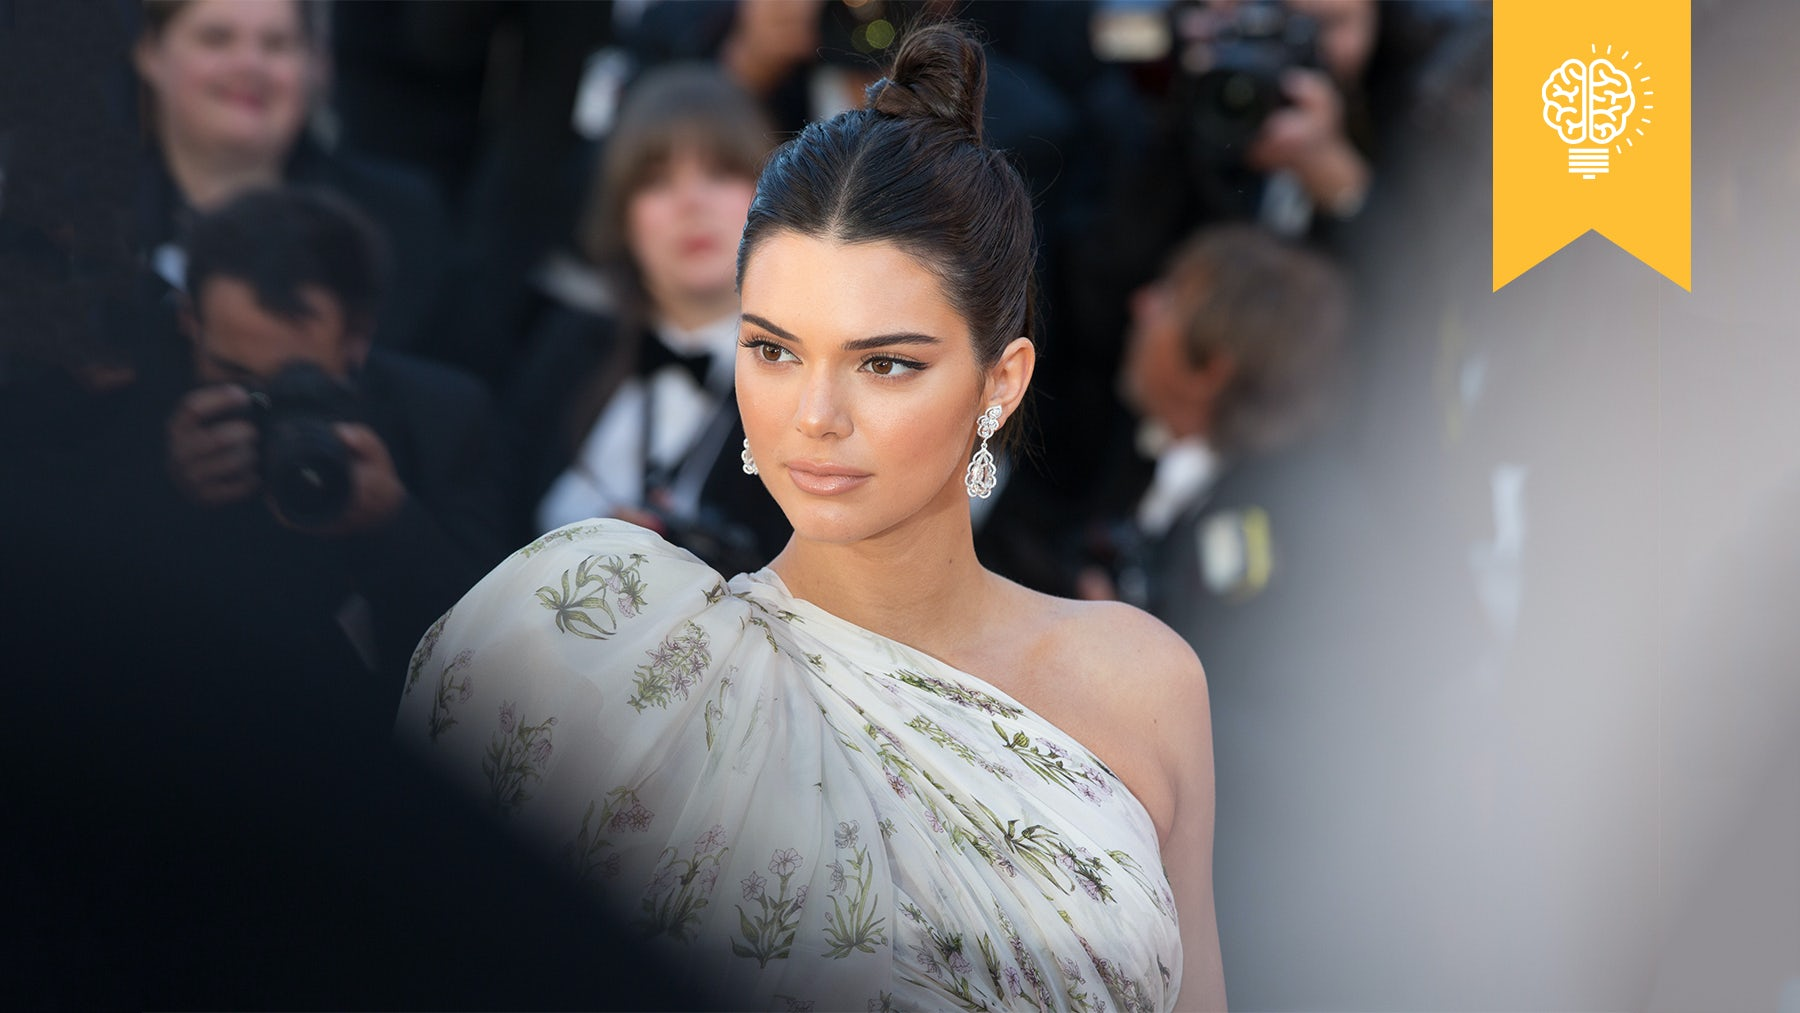 The Kendall Jenner Effect: How Long Can it Last?